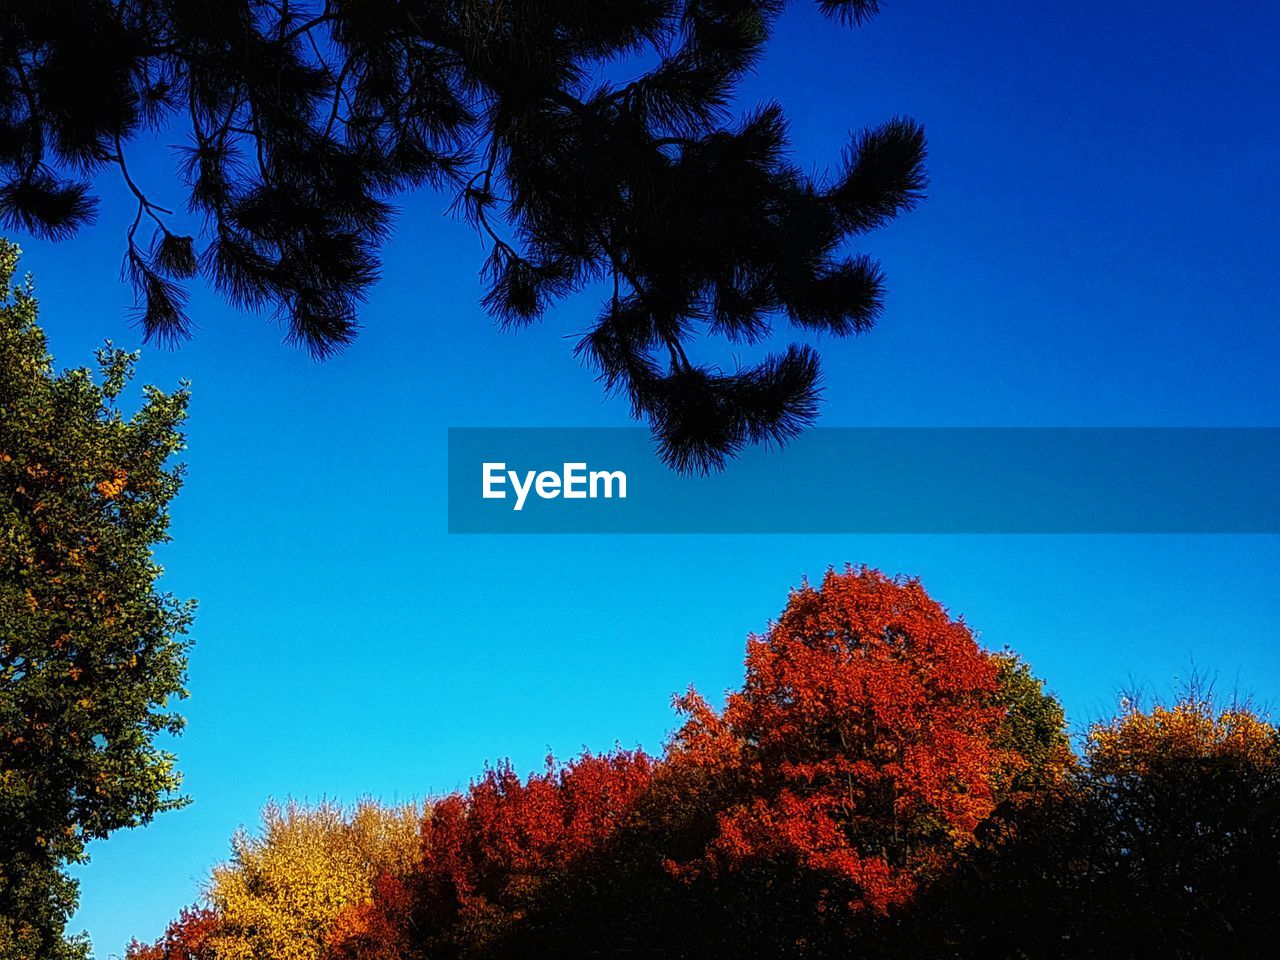 tree, plant, sky, blue, growth, low angle view, tranquility, beauty in nature, no people, tranquil scene, nature, clear sky, scenics - nature, day, change, autumn, outdoors, branch, silhouette, treetop